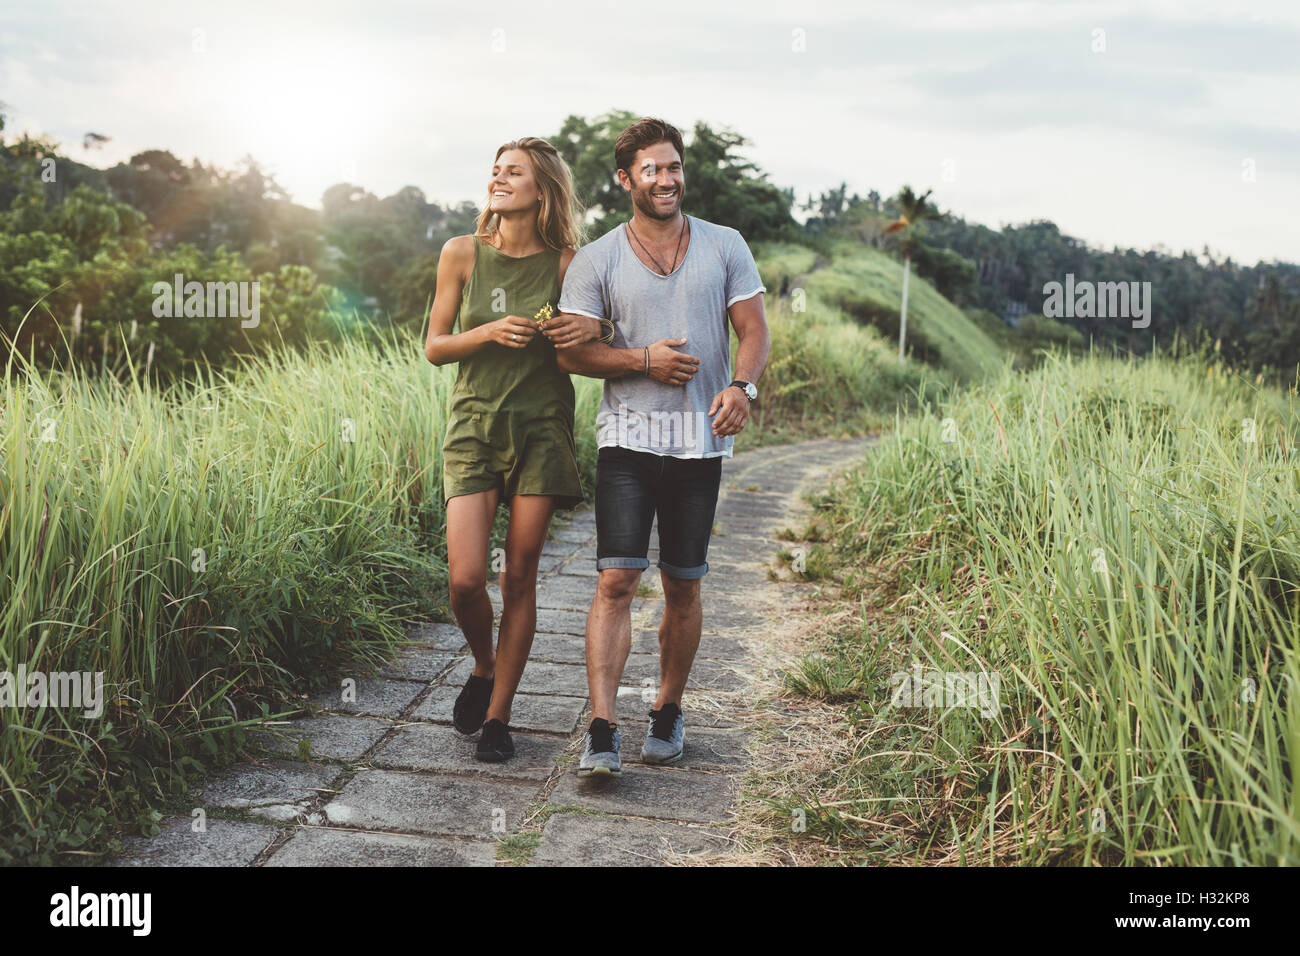 Piscine shot of young couple in love marche sur chemin par grass field. L'homme et de la femme marchant le long Photo Stock